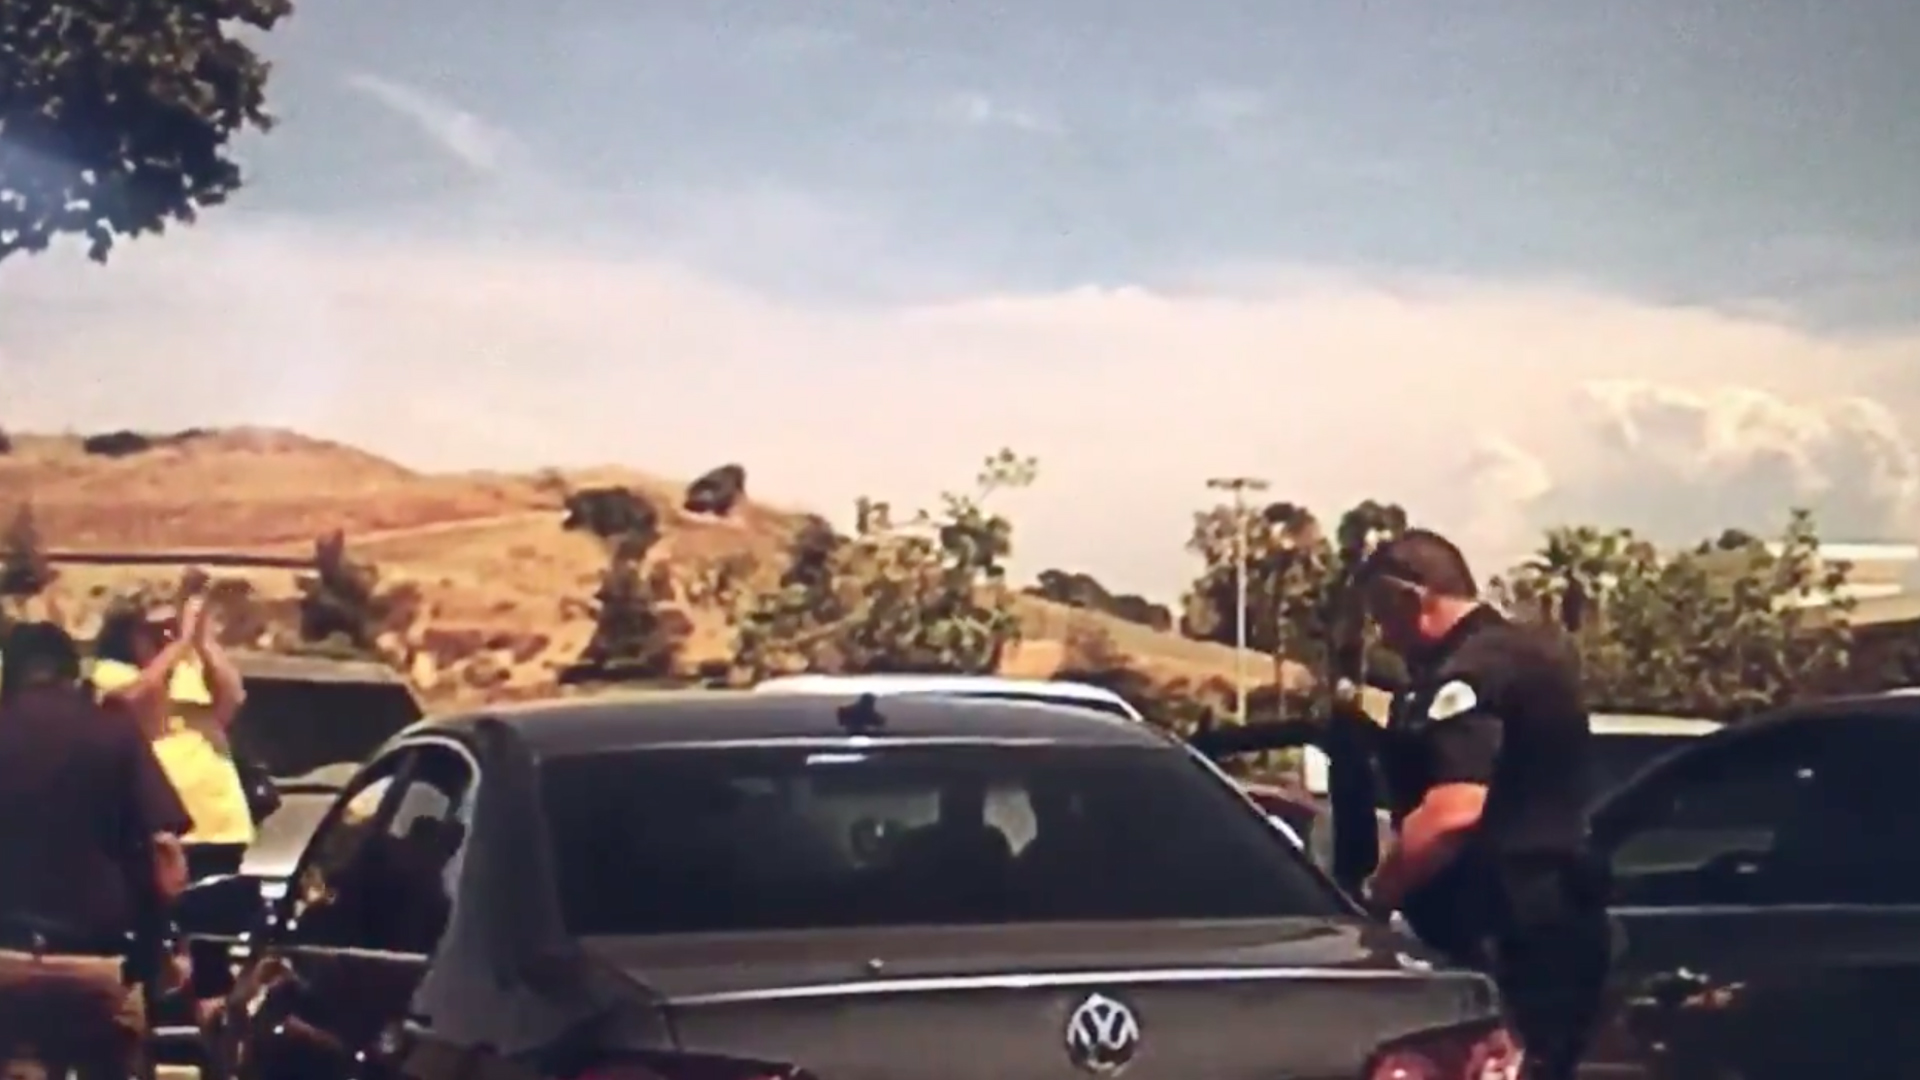 A bystander claps as police remove a Dachshund from a car in a West Covina parking lot as temperatures neared 100 degrees on July 25, 2019. (Credit: West Covina Police Department)